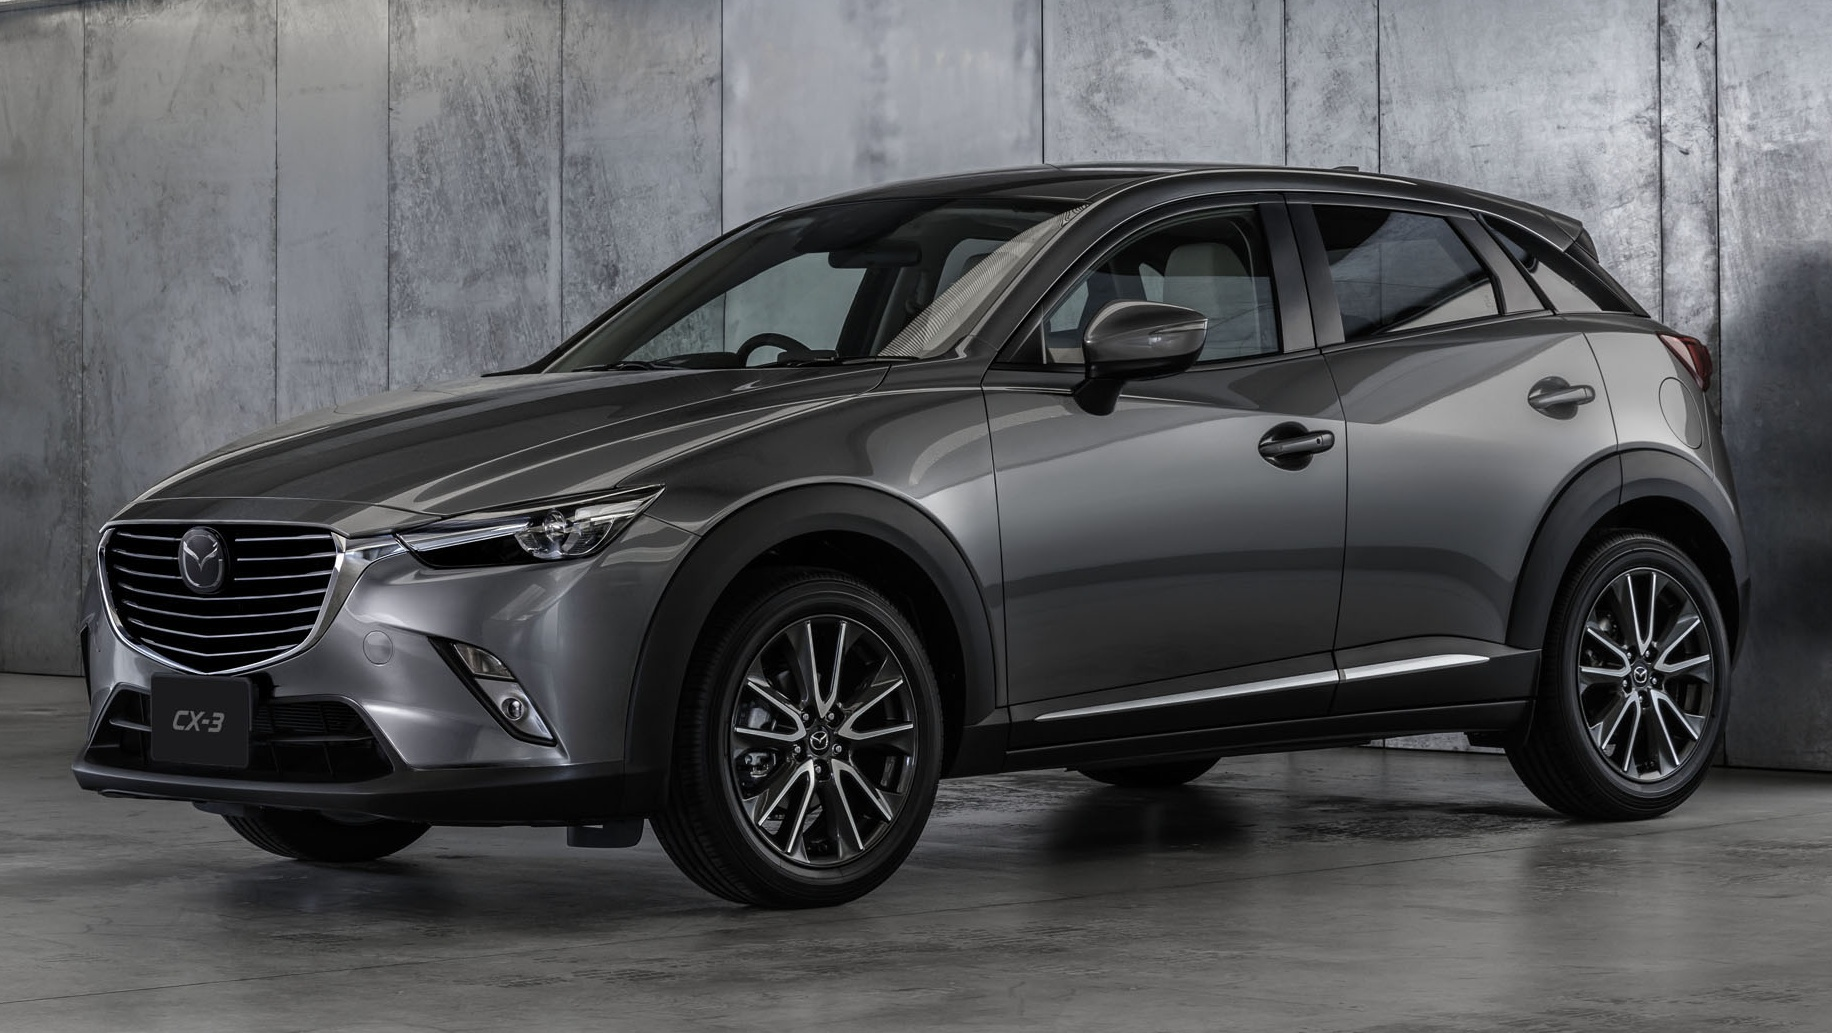 2017 mazda cx 3 now on sale in malaysia with g vectoring. Black Bedroom Furniture Sets. Home Design Ideas